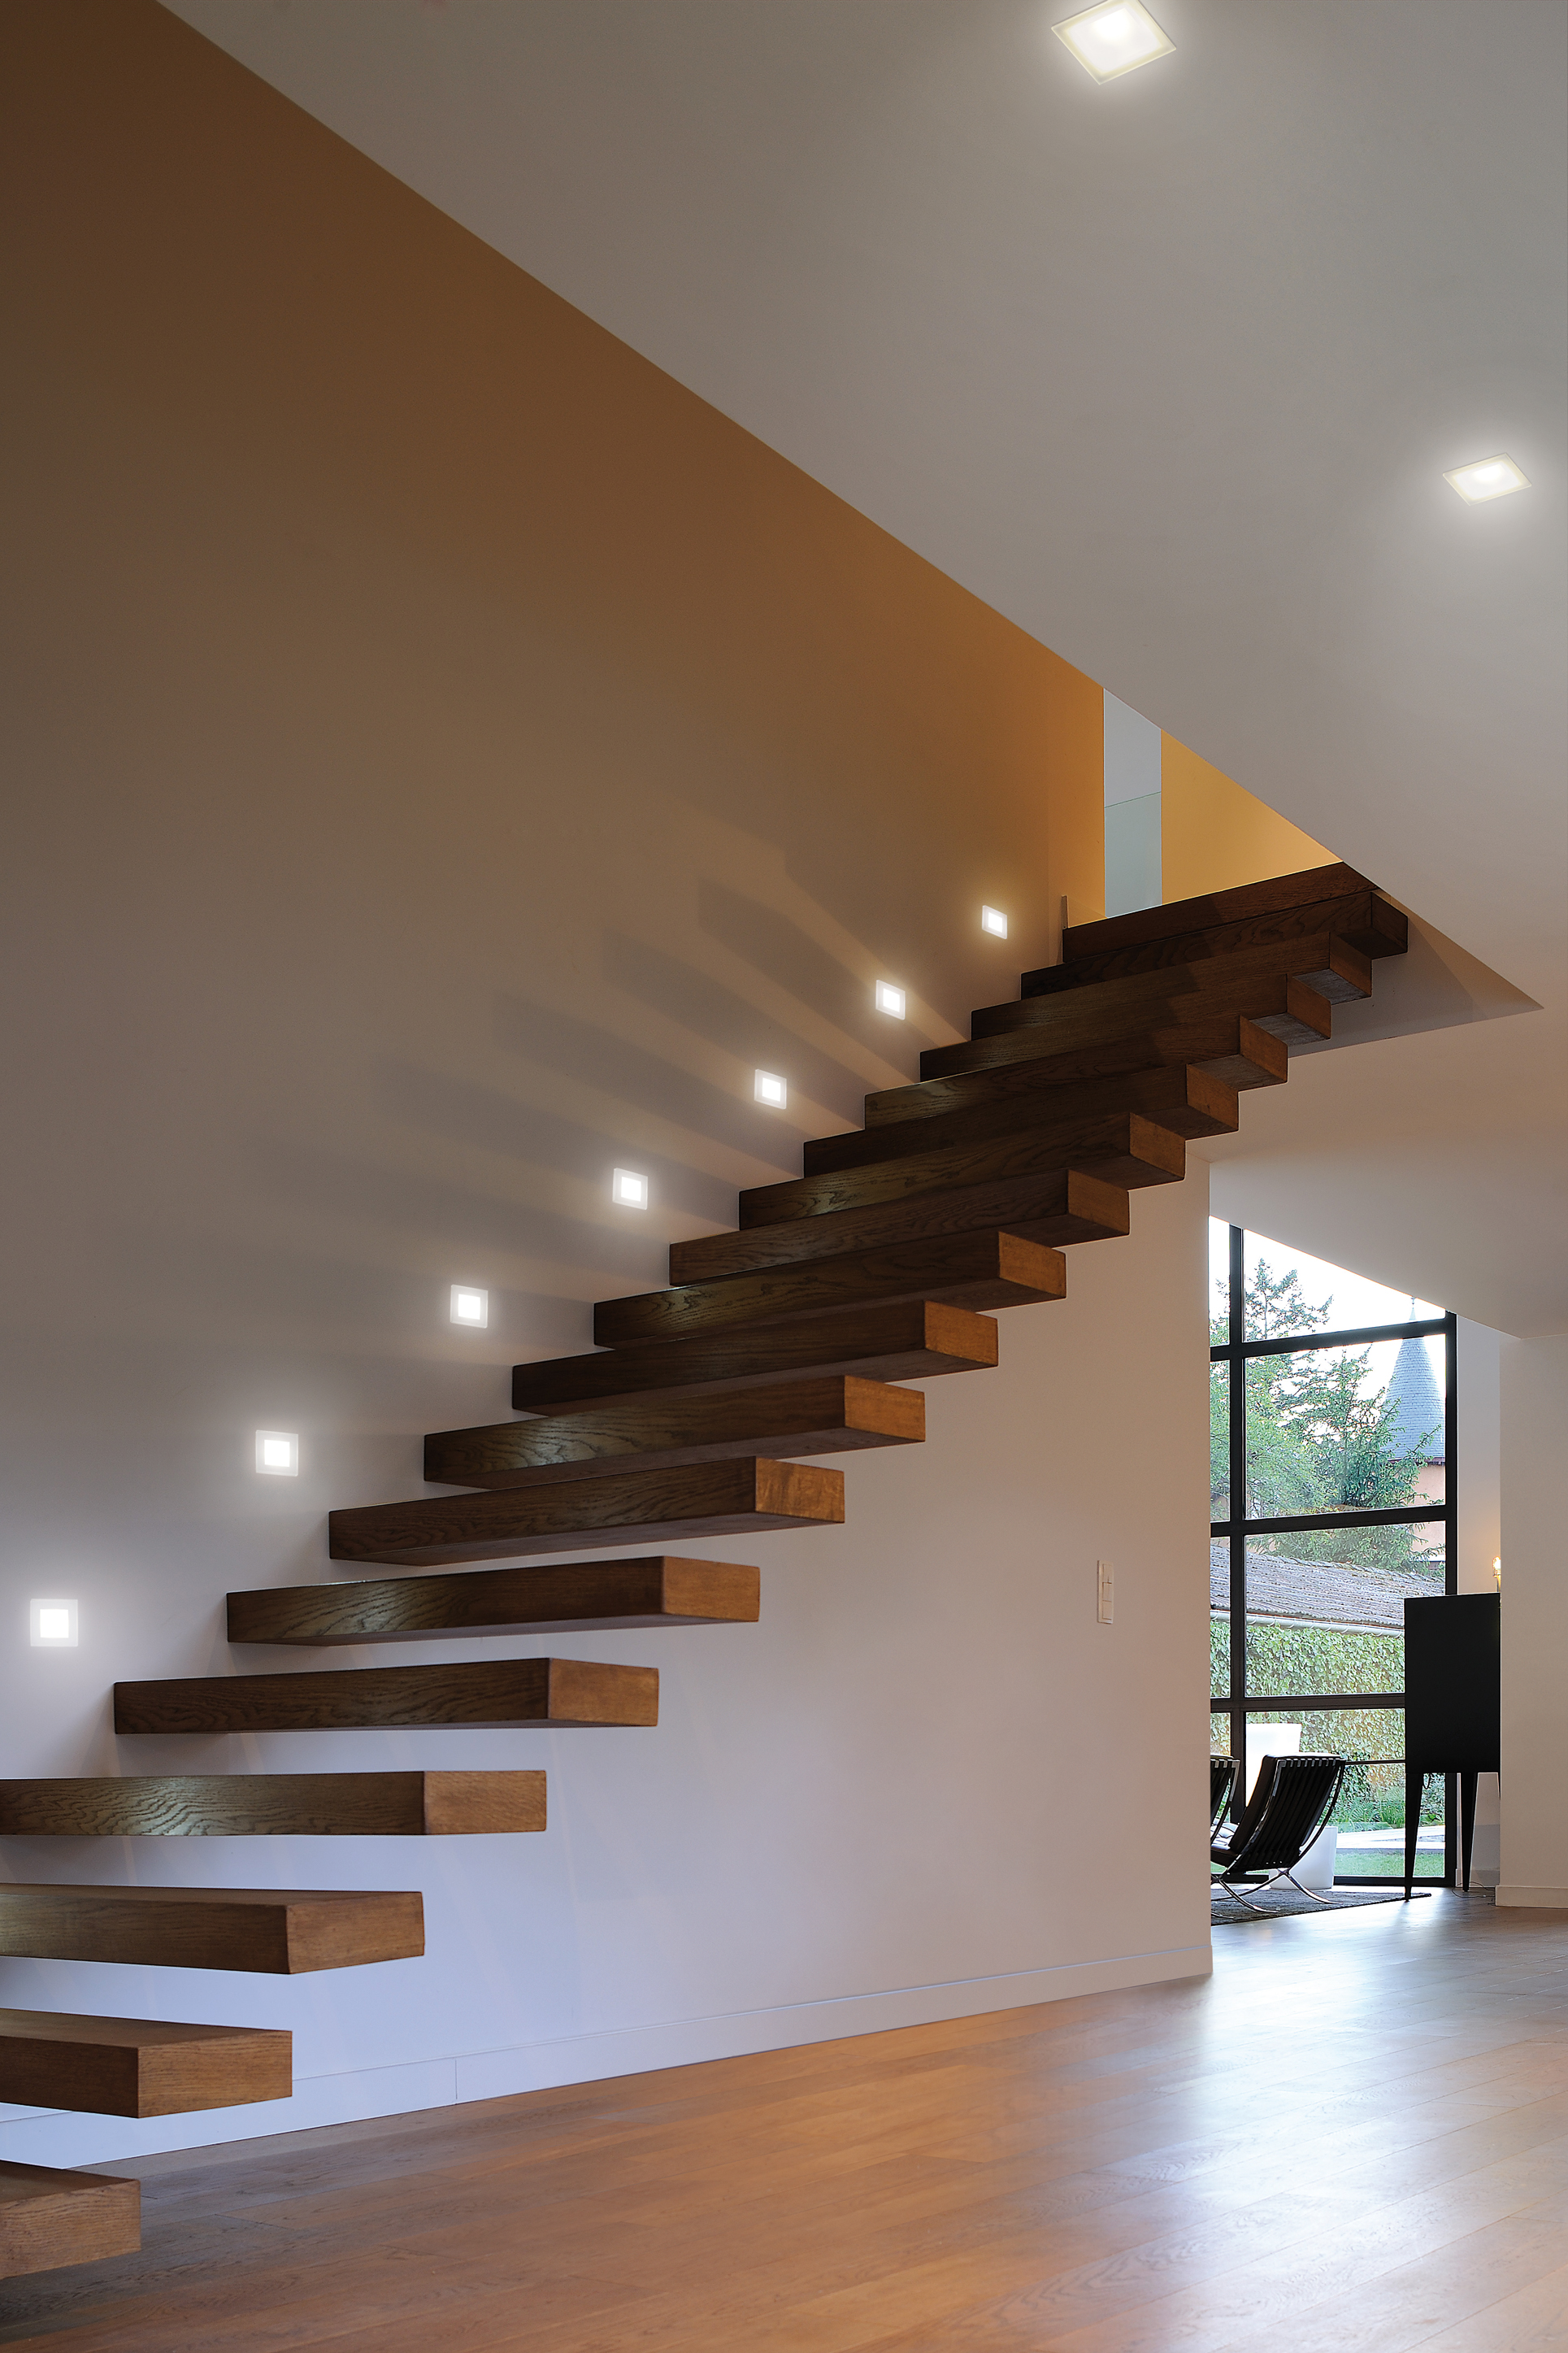 Spot da incasso a led luce e design for Luci a led per casa